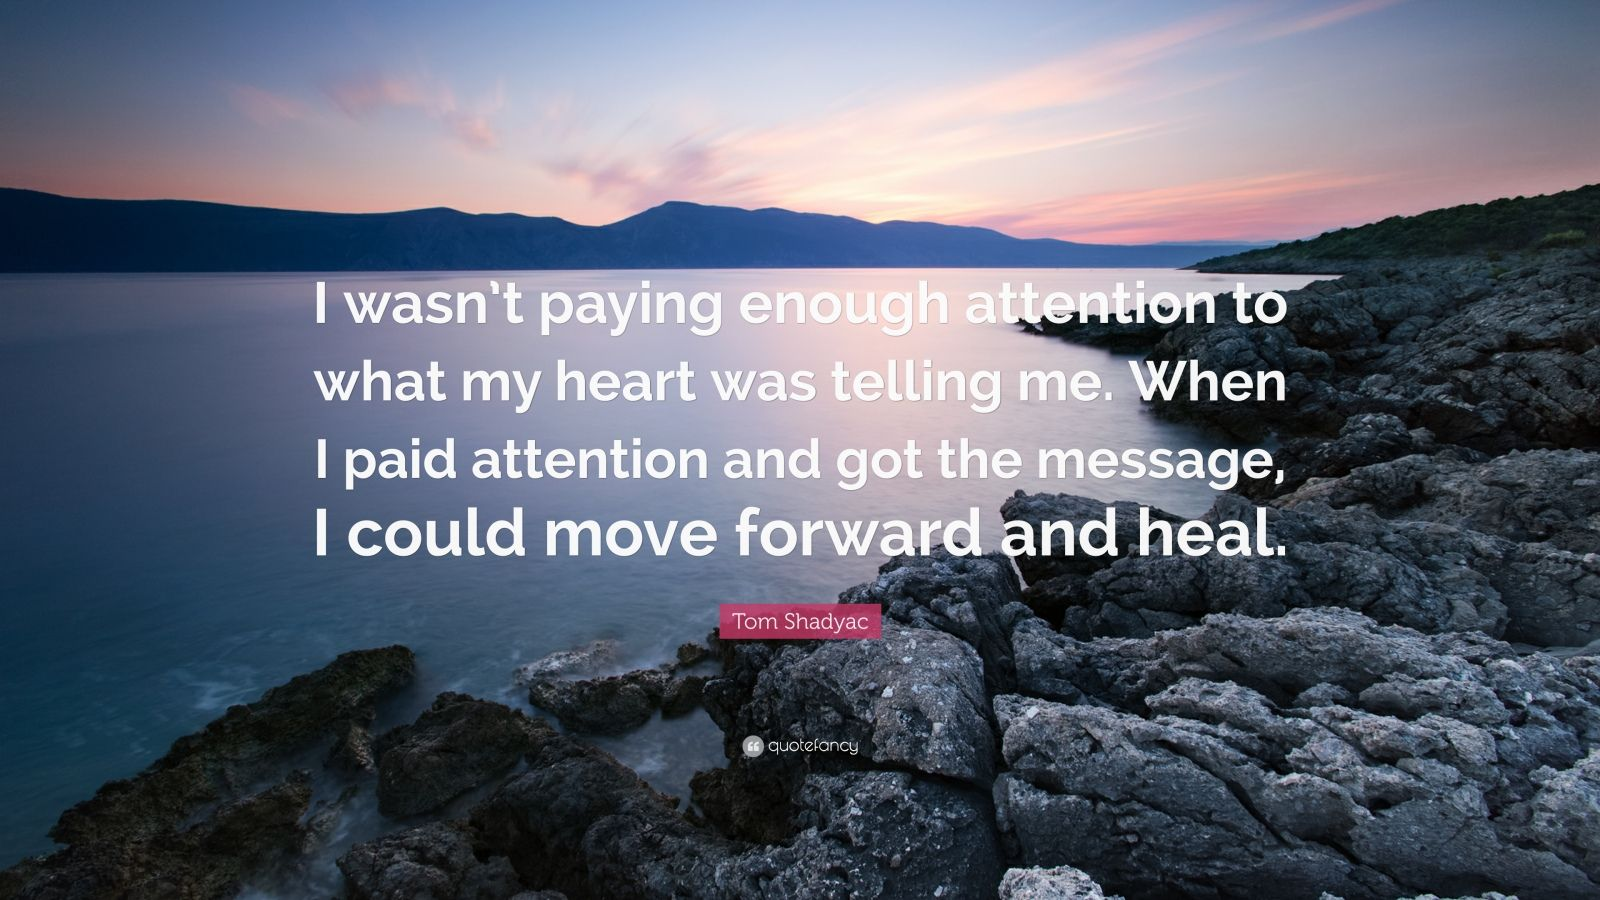 "Tom Shadyac Quote: ""I wasn't paying enough attention to what my heart was telling me. When I paid attention and got the message, I could move forward and heal."""